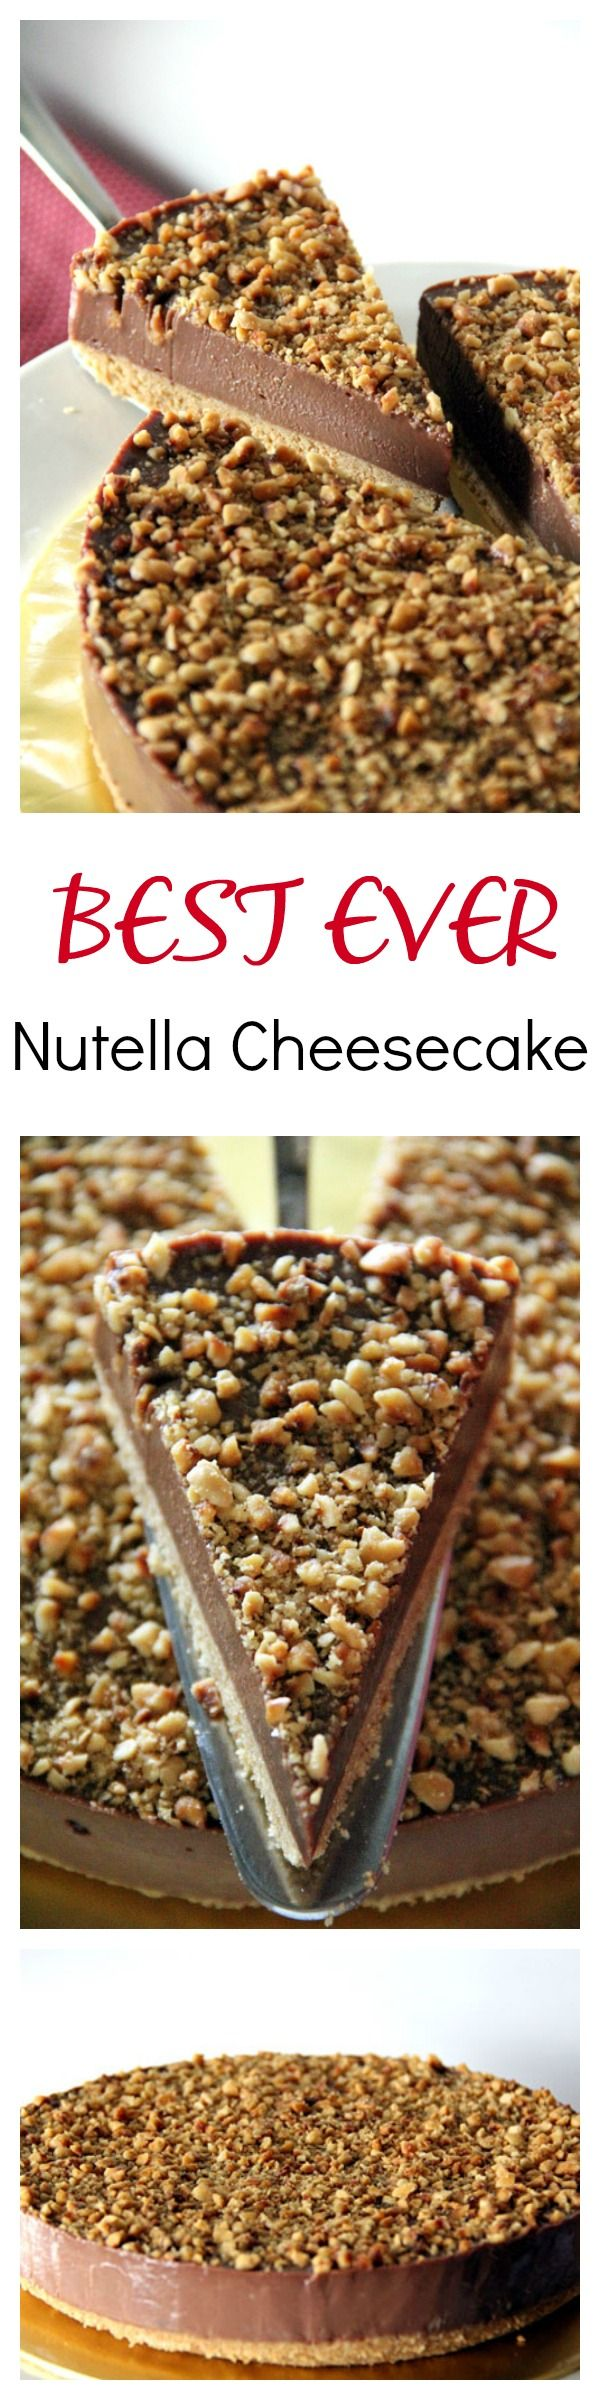 Best-ever NO BAKE Nutella Cheesecake with toasted hazelnut, to-die-for richest and creamiest cheesecake | rasamalaysia.com #chocolates #sweet #yummy #delicious #food #chocolaterecipes #choco